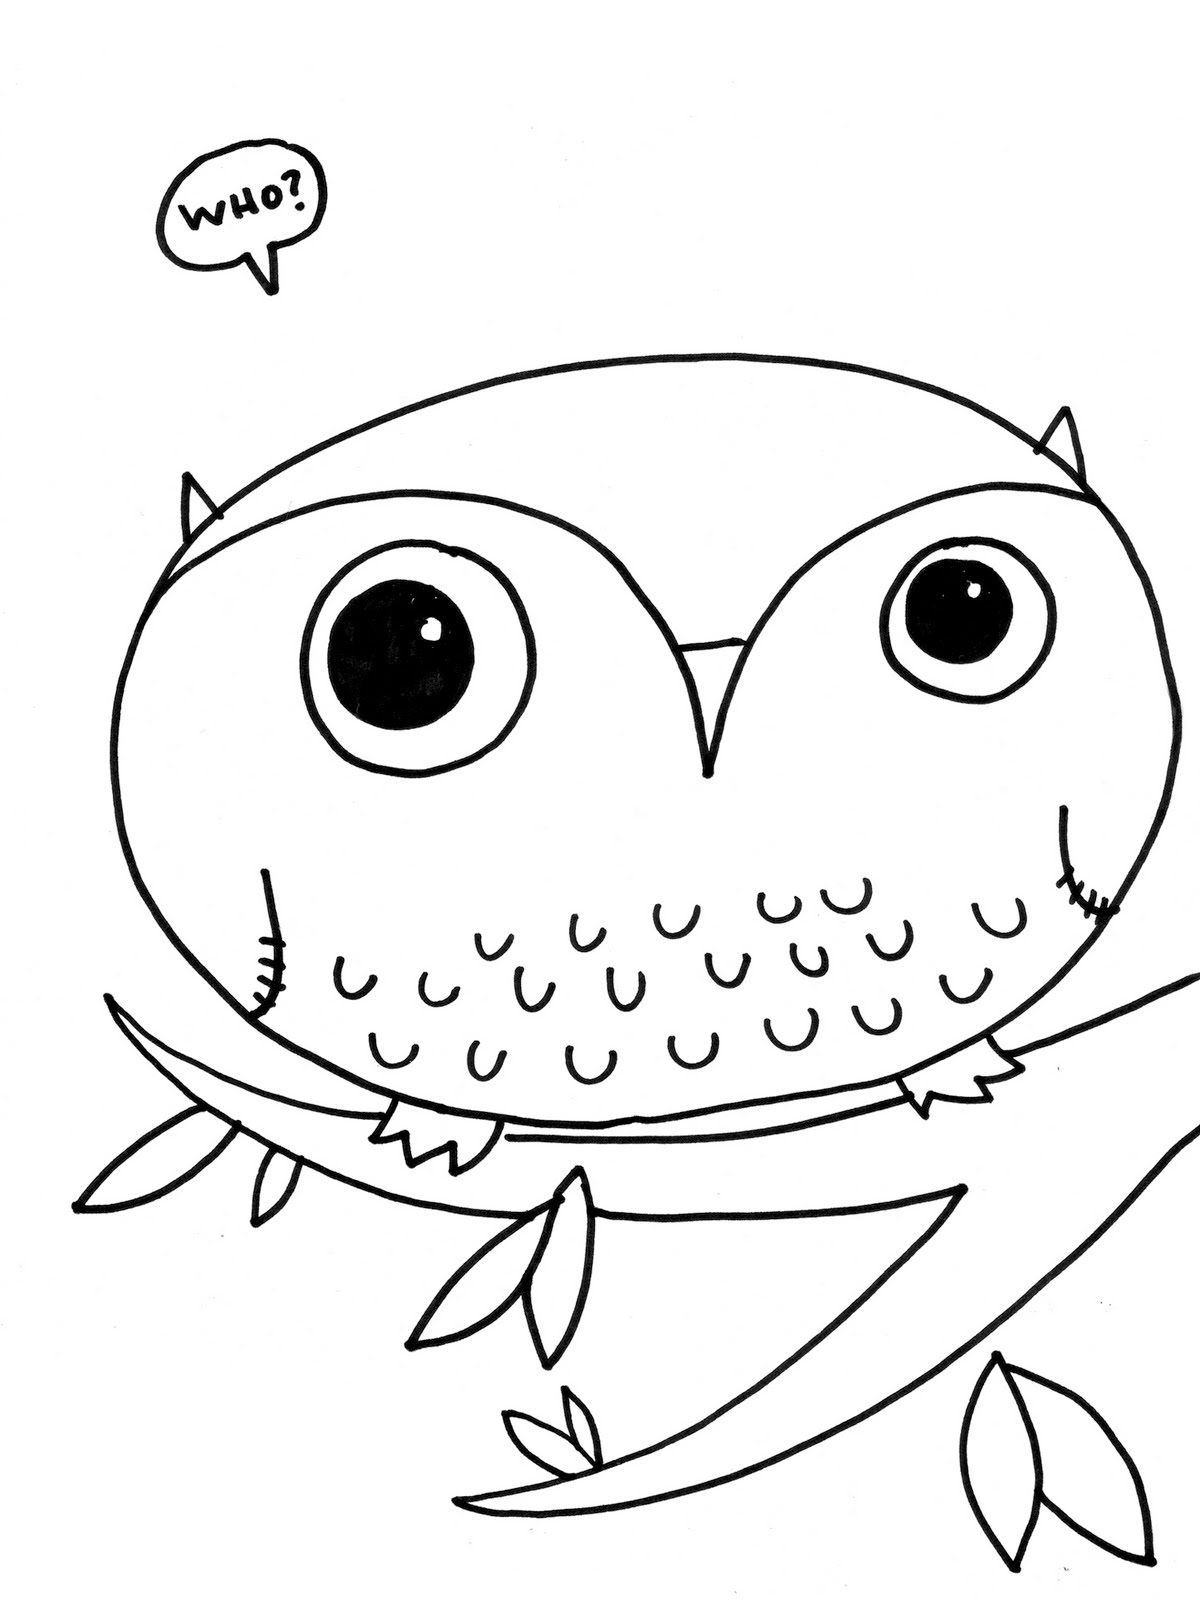 Free Printable Owl Coloring Pages For Kids Coloring Sheets Free To Print